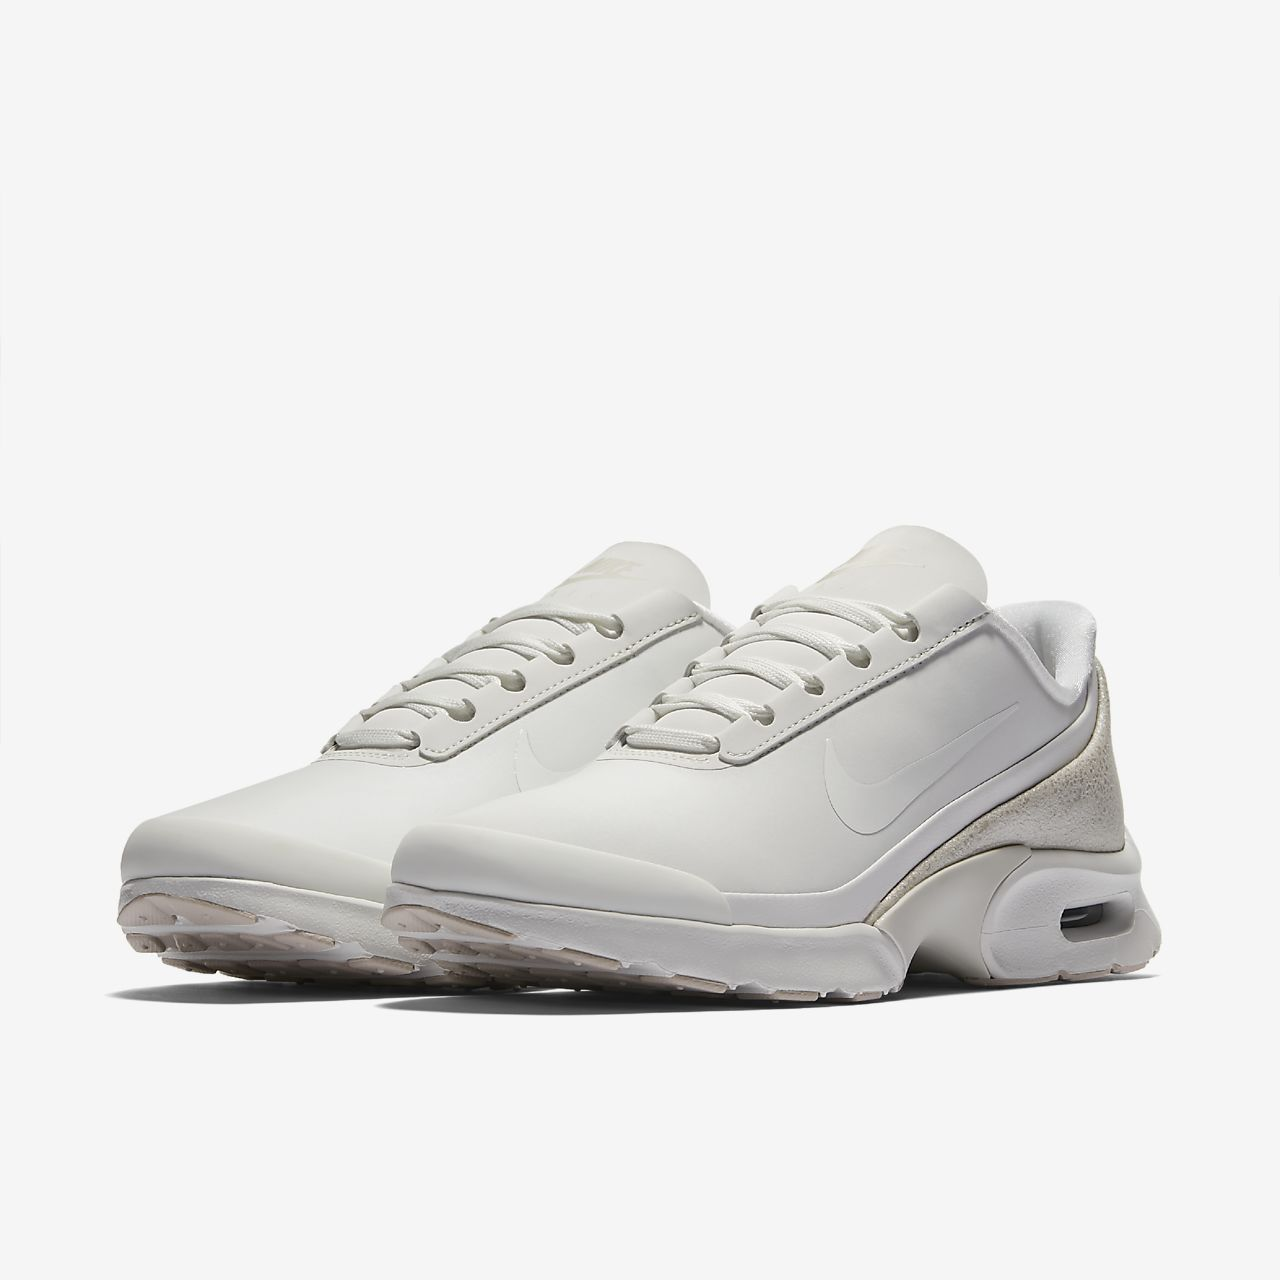 Nike Air Max Jewell Leather Women's Lifestyle Shoes White/Grey rM7379C